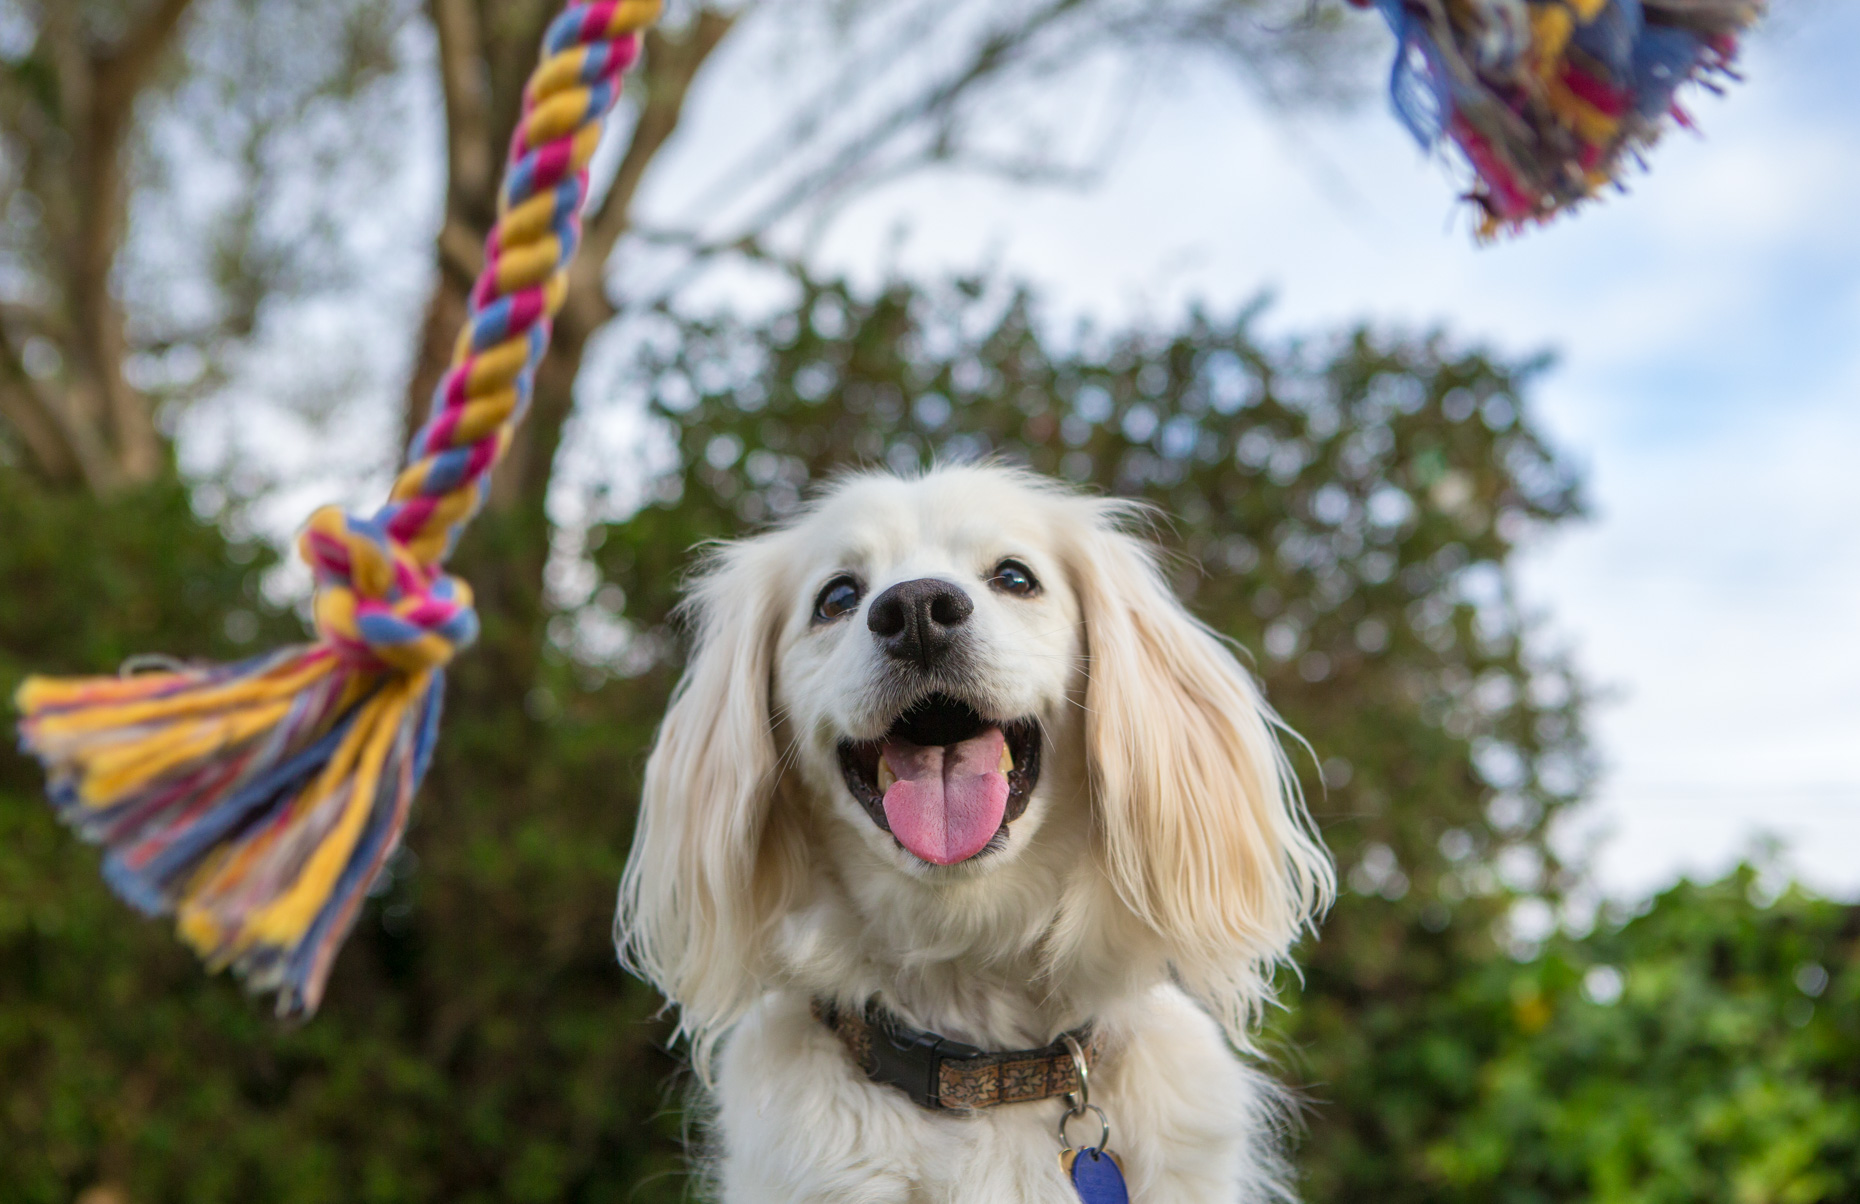 Dog Advertising Photography | Spaniel Looking at Rope Toy by Mark Rogers